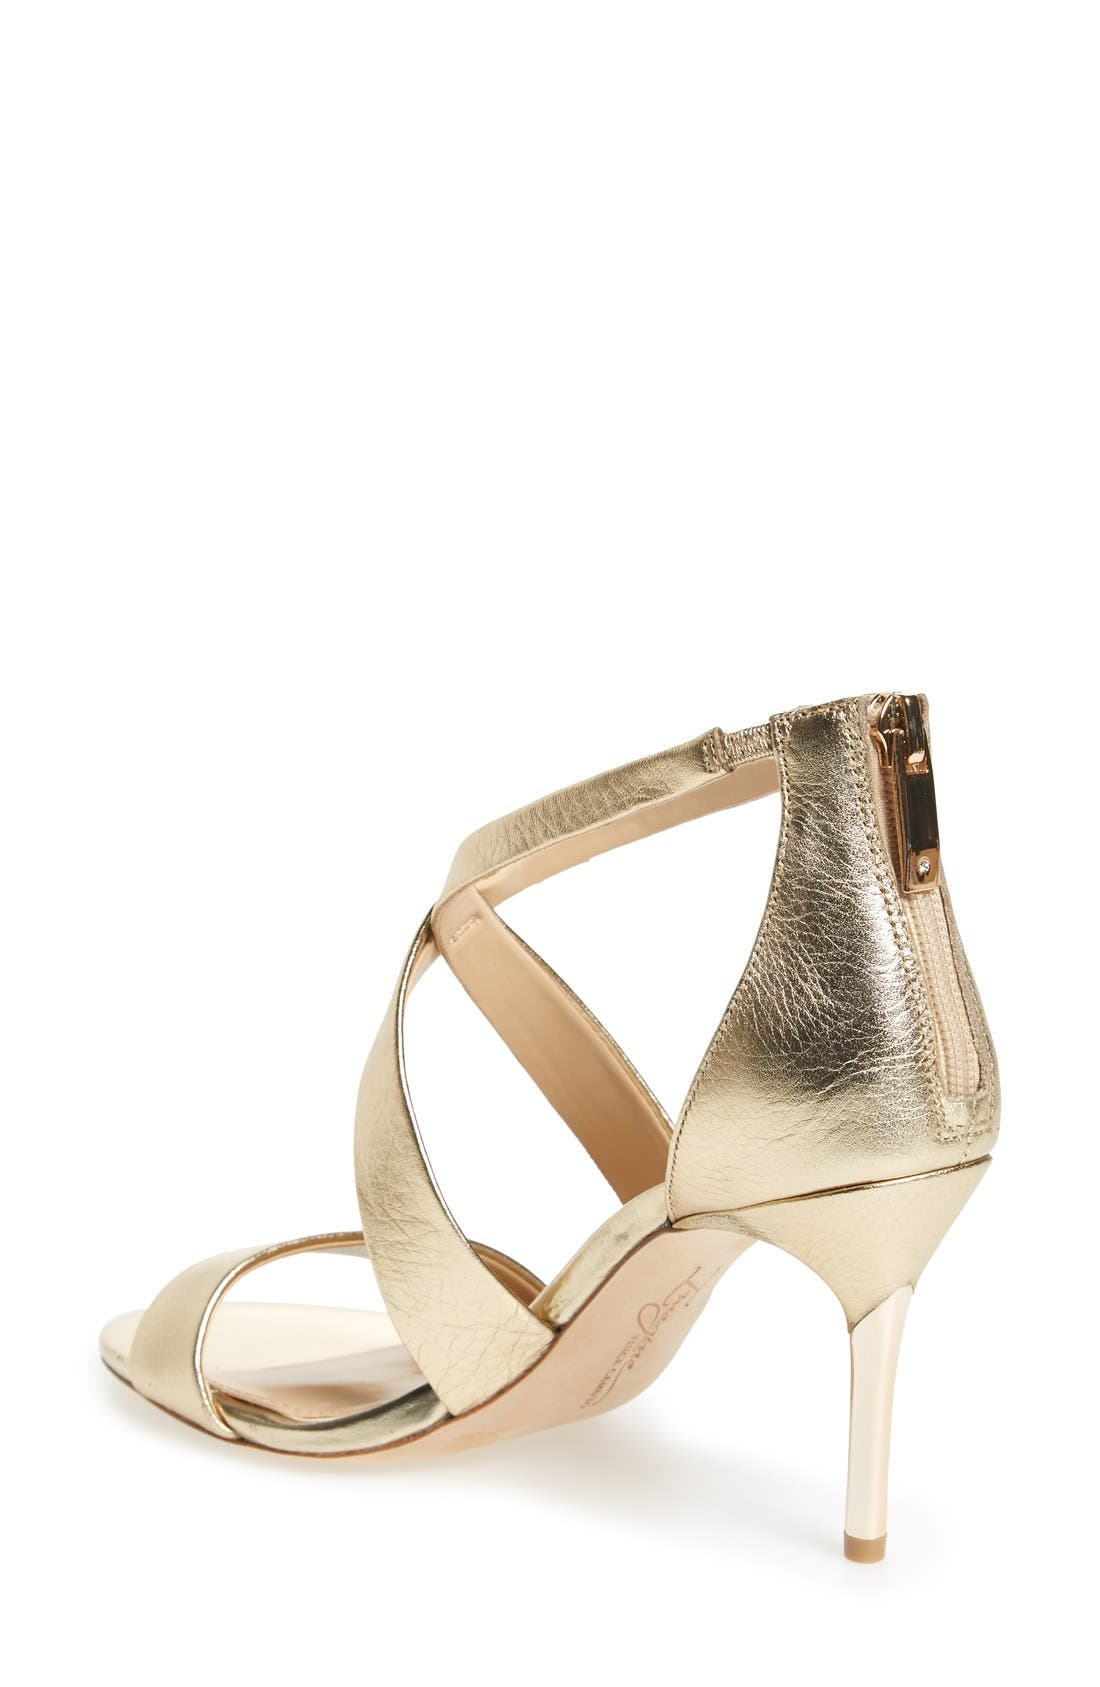 'Pascal 2' Strappy Evening Sandal,                             Alternate thumbnail 3, color,                             SOFT GOLD LEATHER